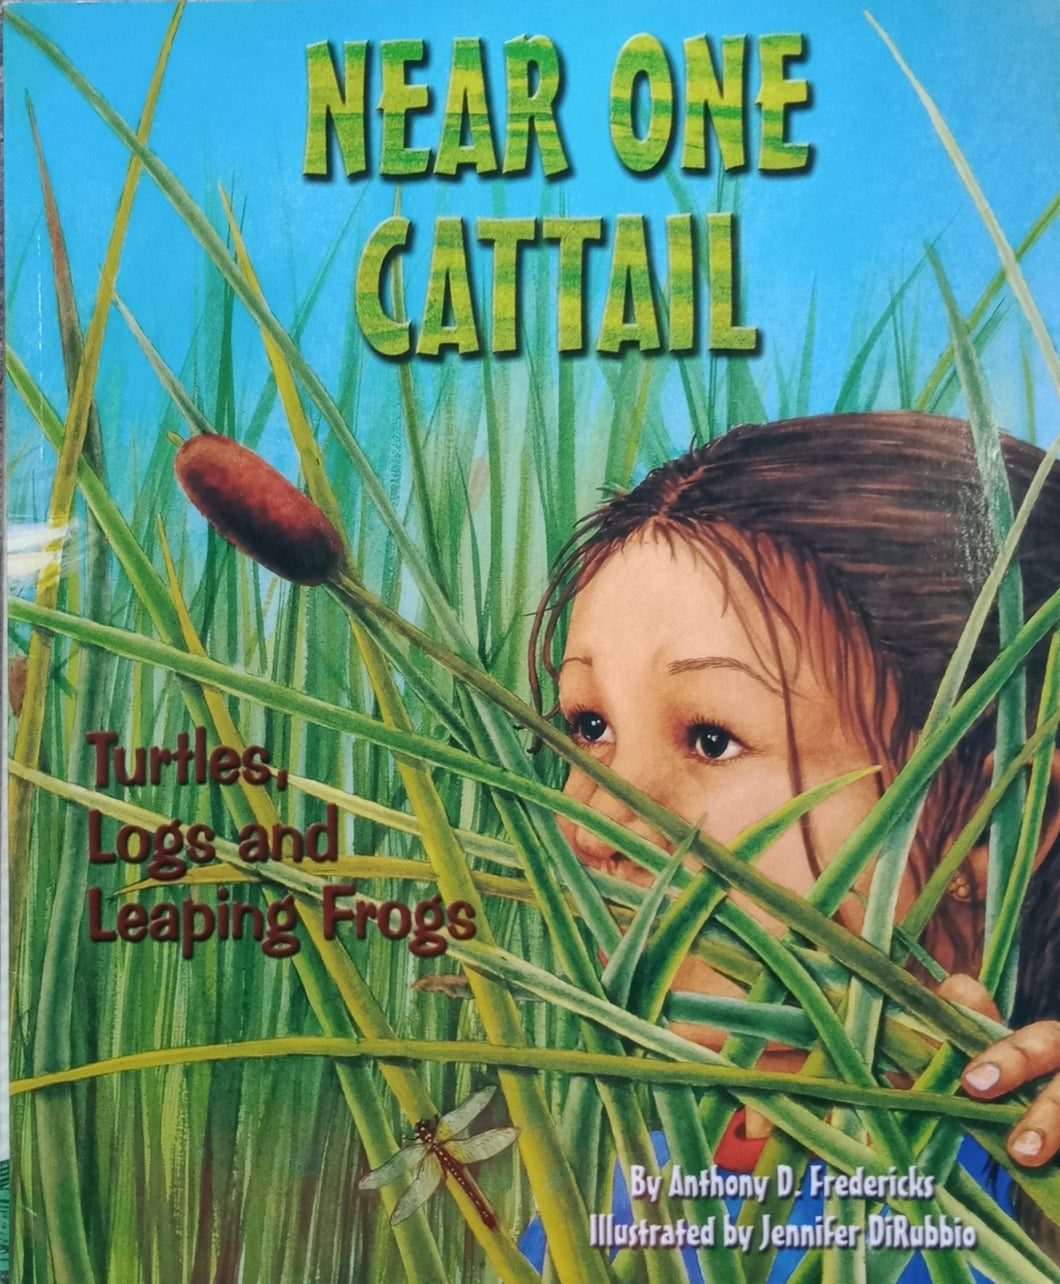 Near One Cattail by Anthony Fredericks